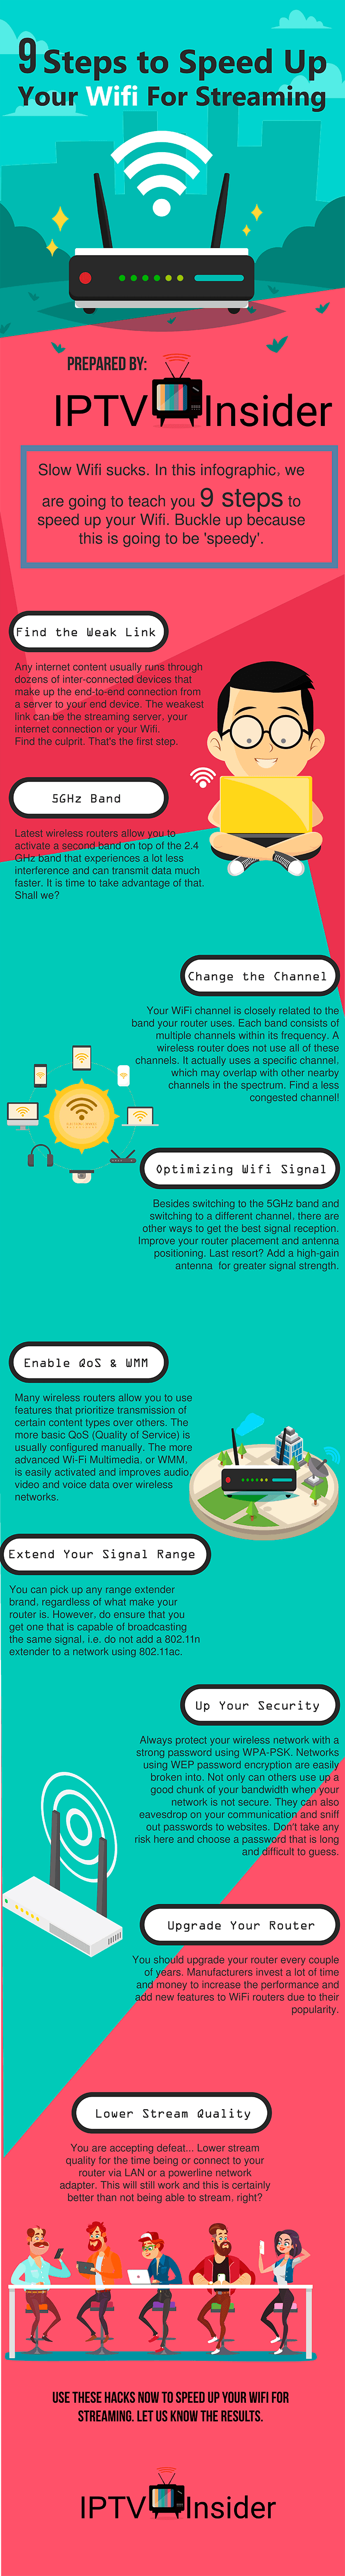 9 steps to speed up your wifi for streaming infographic